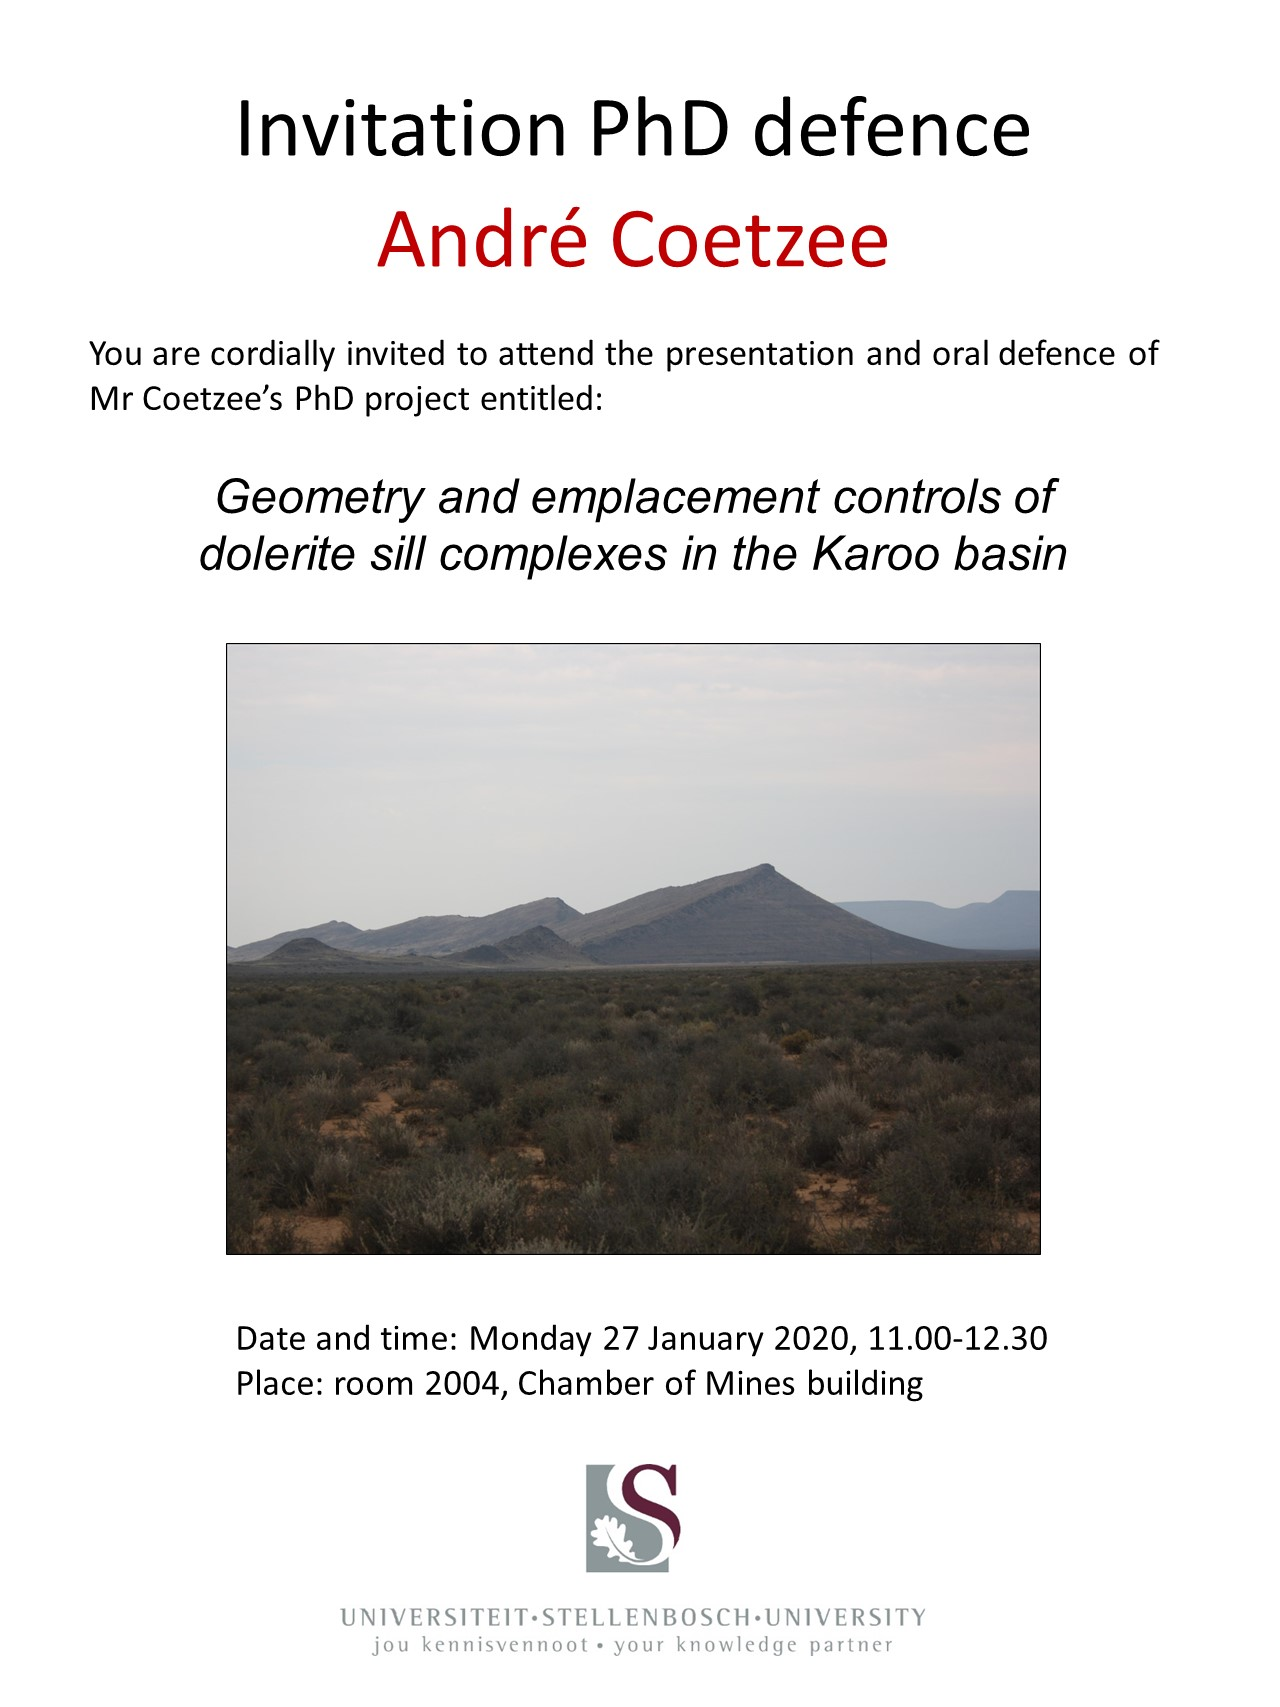 MSc defenc add Coetzee PhD-1.jpg